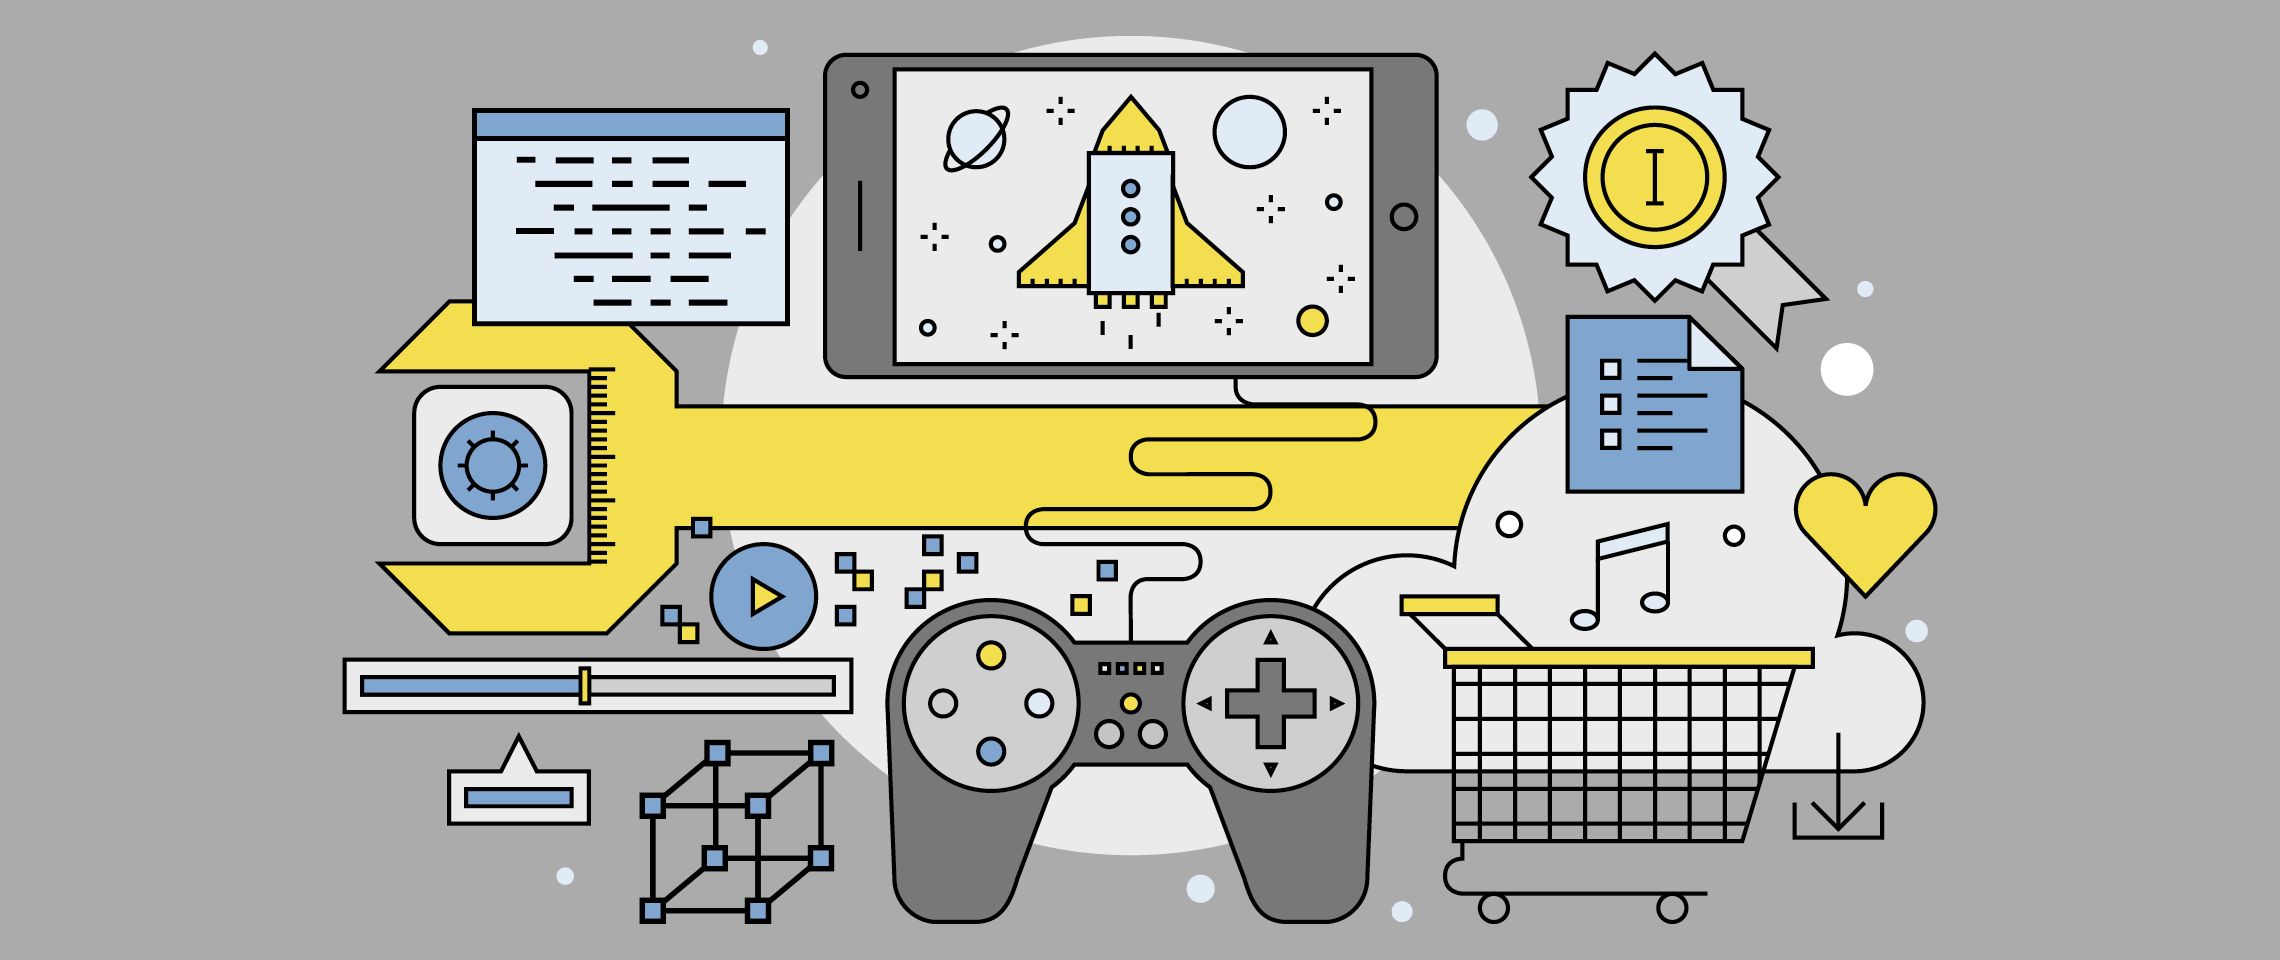 Illustration of elements of video games and game design